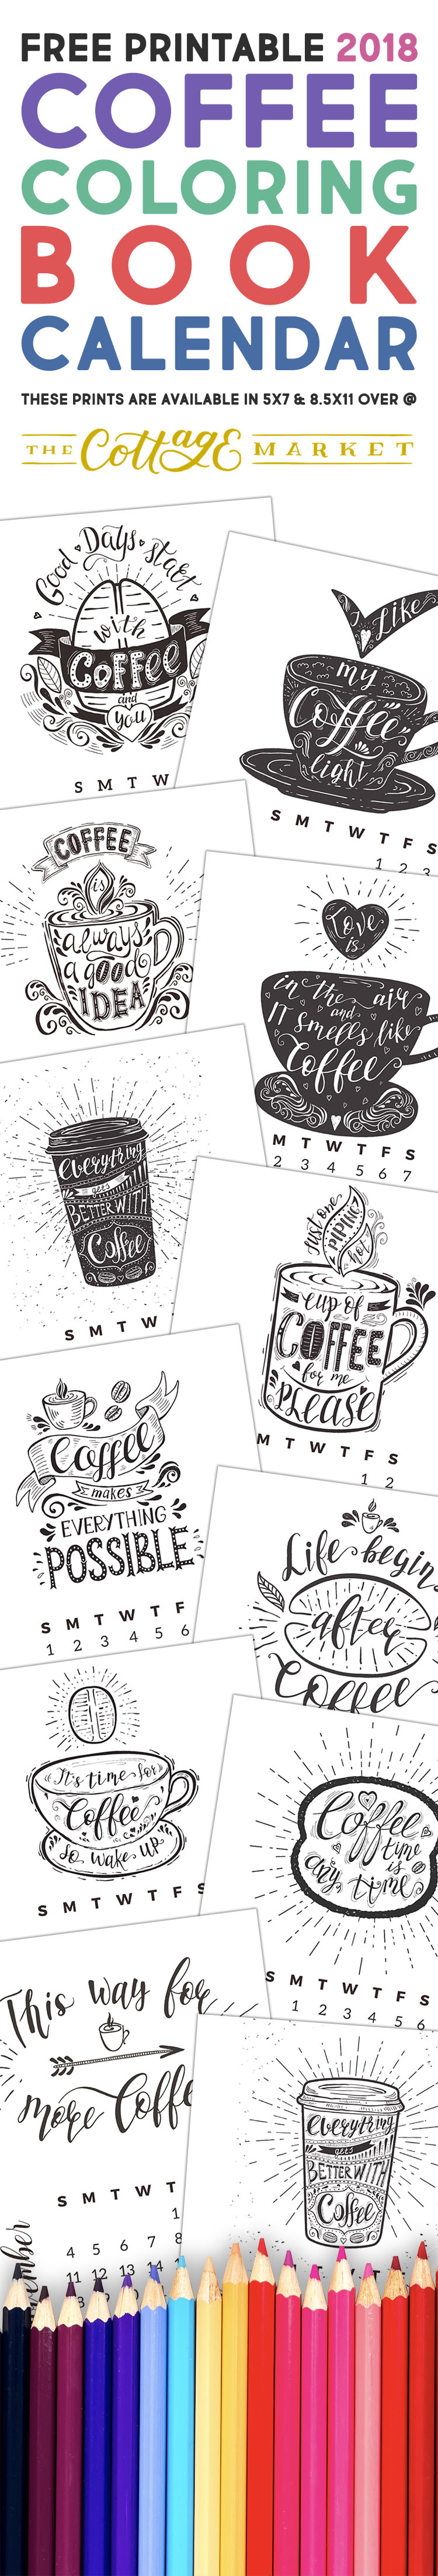 http://thecottagemarket.com/wp-content/uploads/2017/12/TCM-Coffee-ColoringBook-Calendar-T-1.jpg